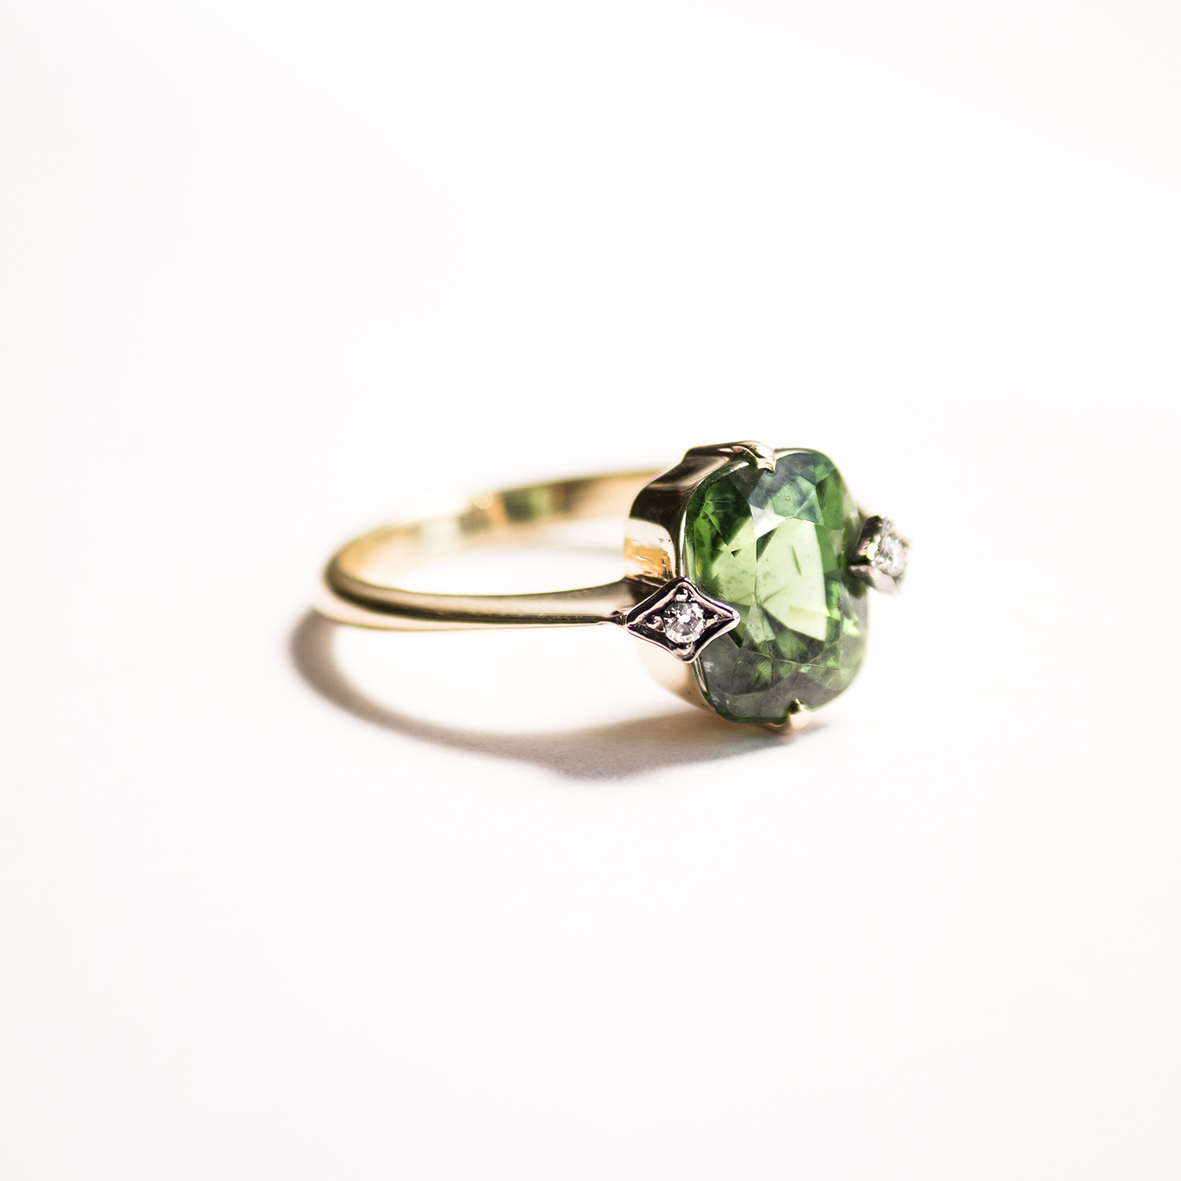 2. OONA_engagement_ficha2_green zircon_2